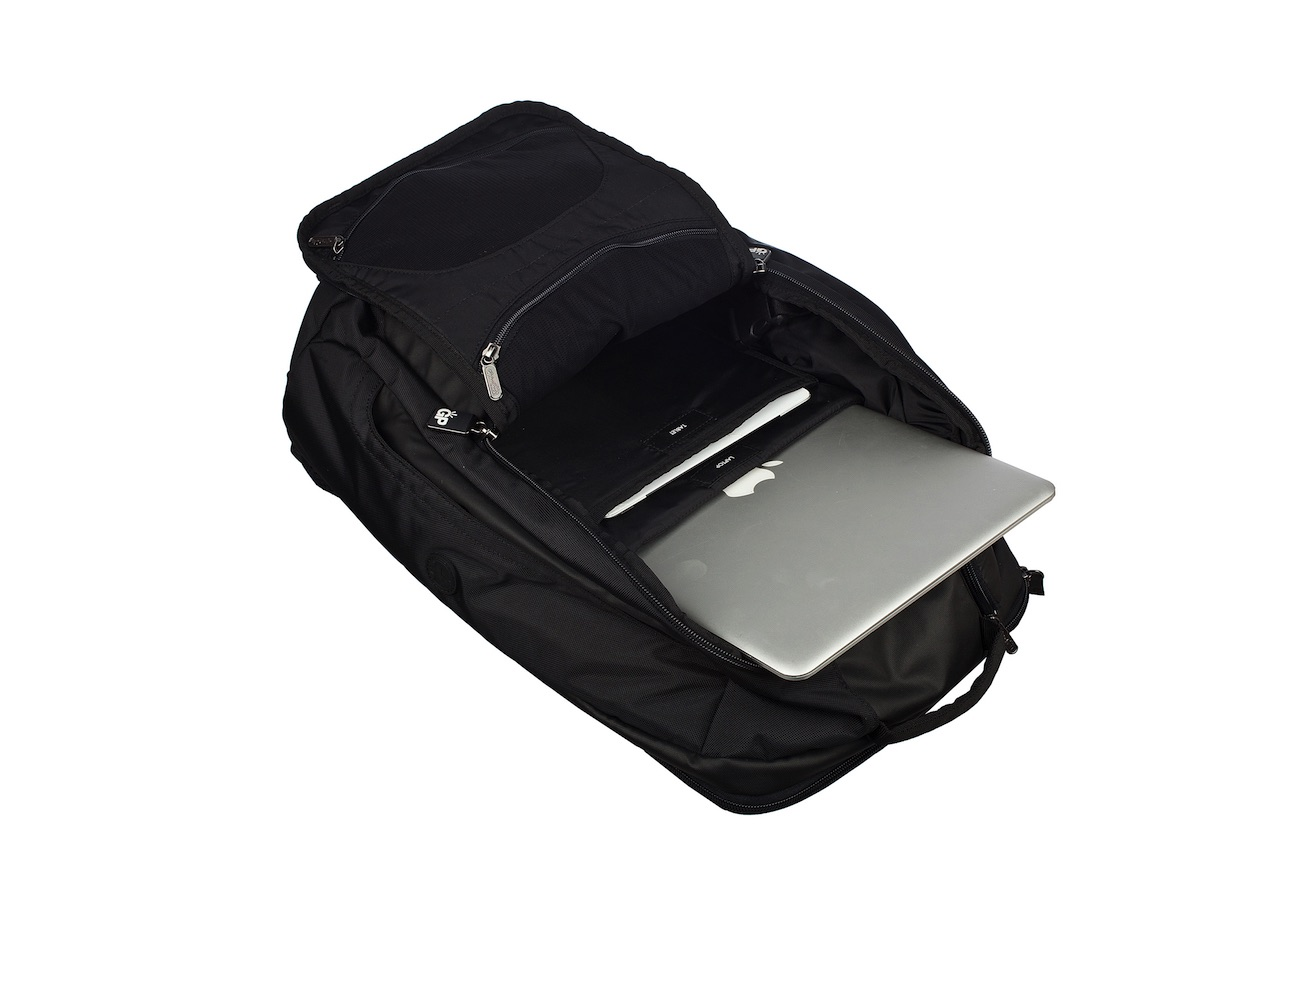 Genius Pack Travel Backpack w/ Integrated Suiter